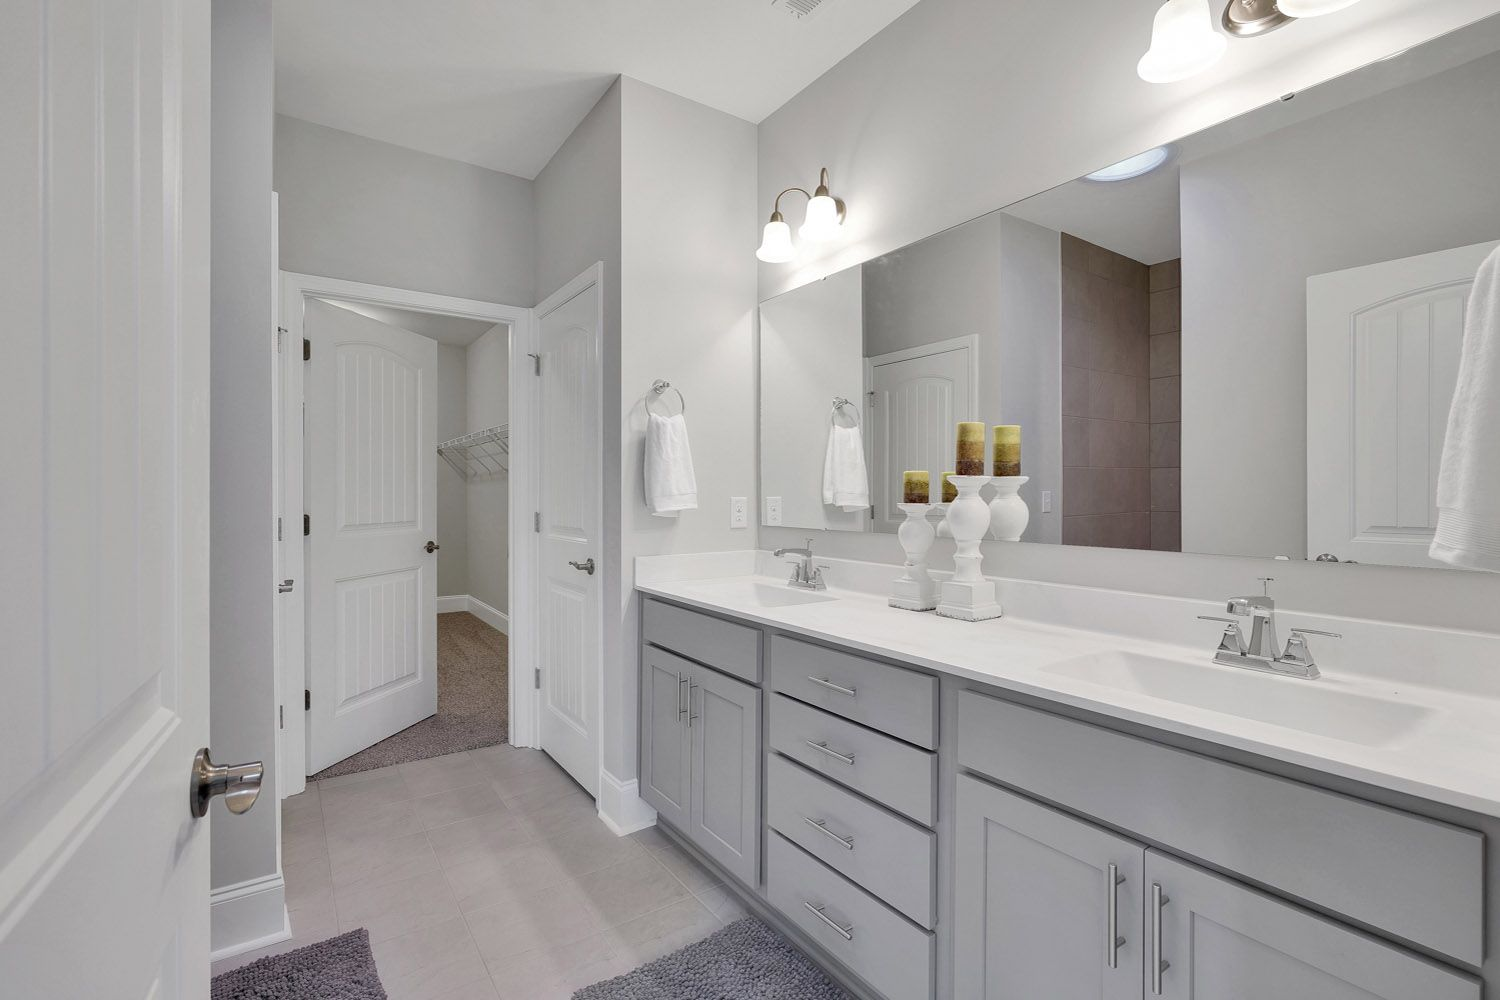 Bathroom featured in the Salerno Craftsman By McKee Homes in Wilmington, NC